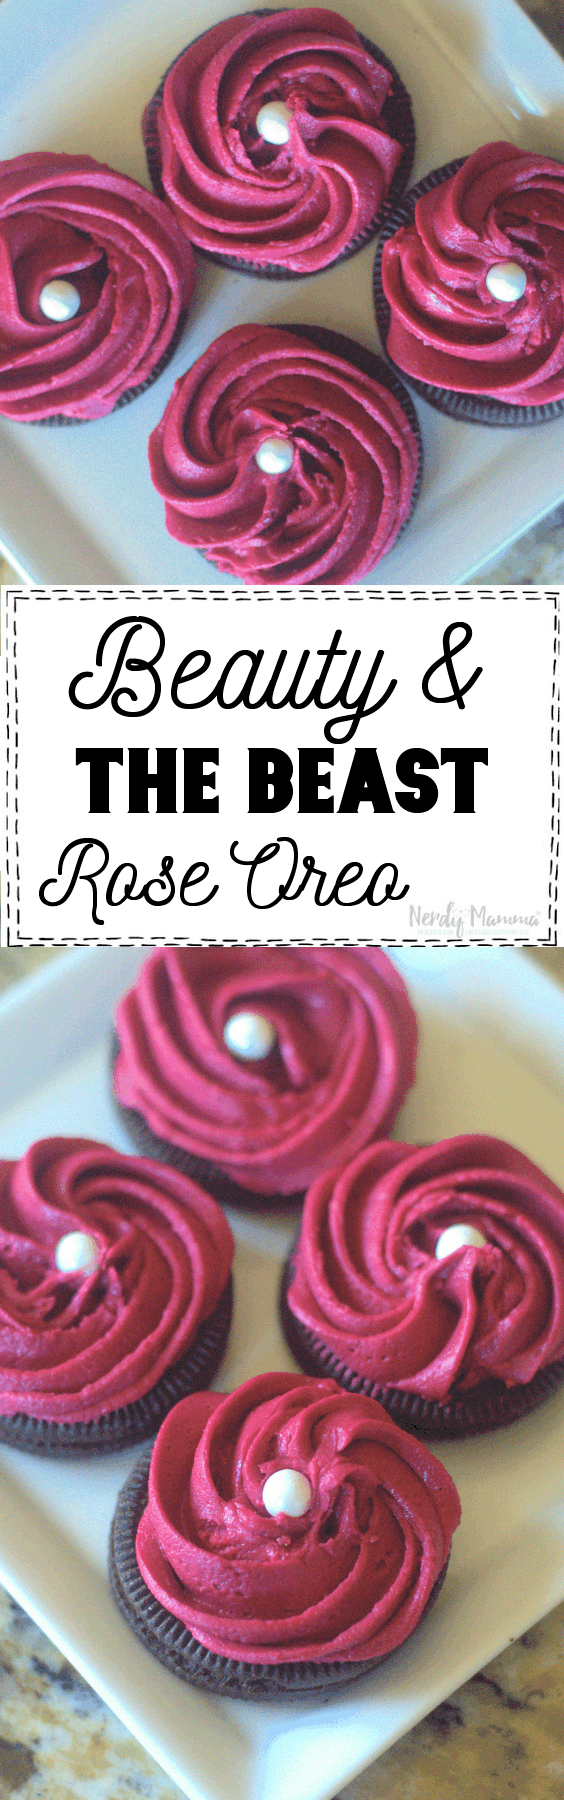 Beauty and The Beast Oreos